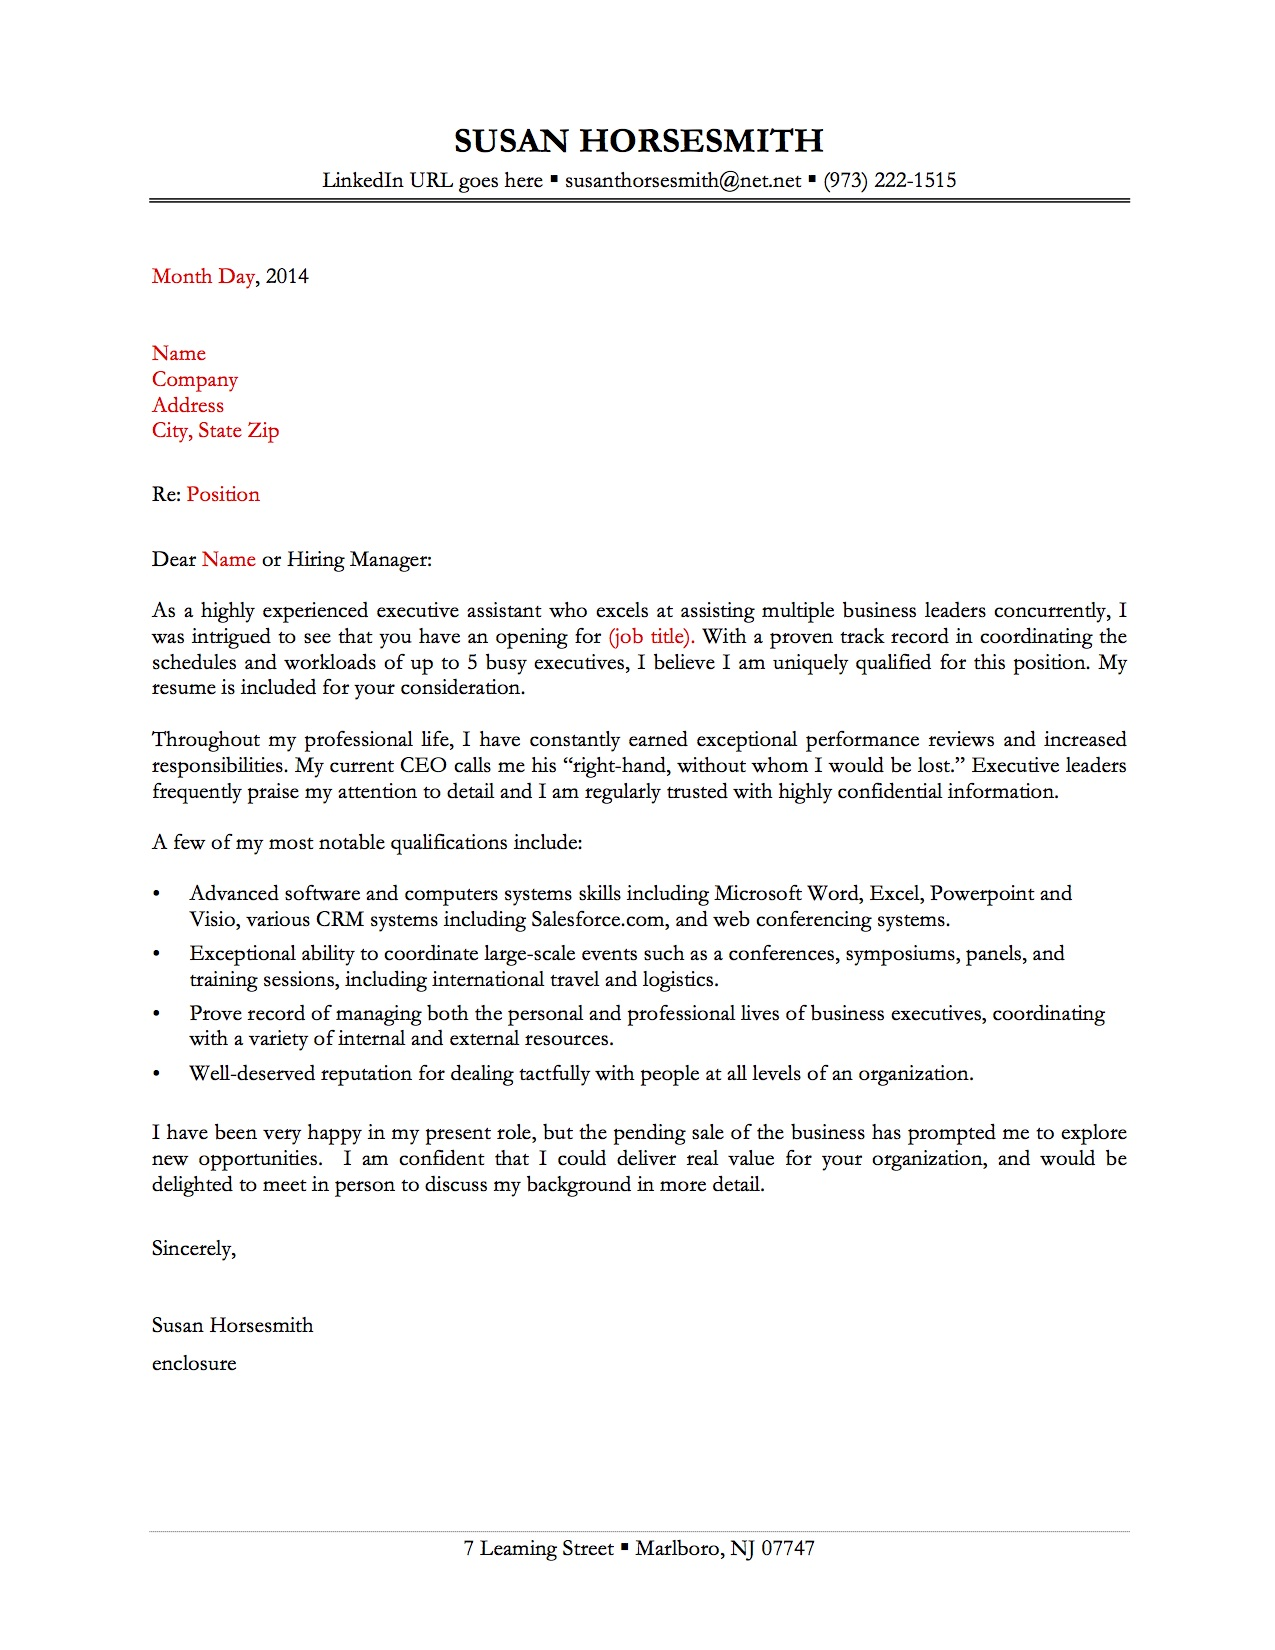 Real Estate Cover Letters Image collections - Cover Letter Ideas